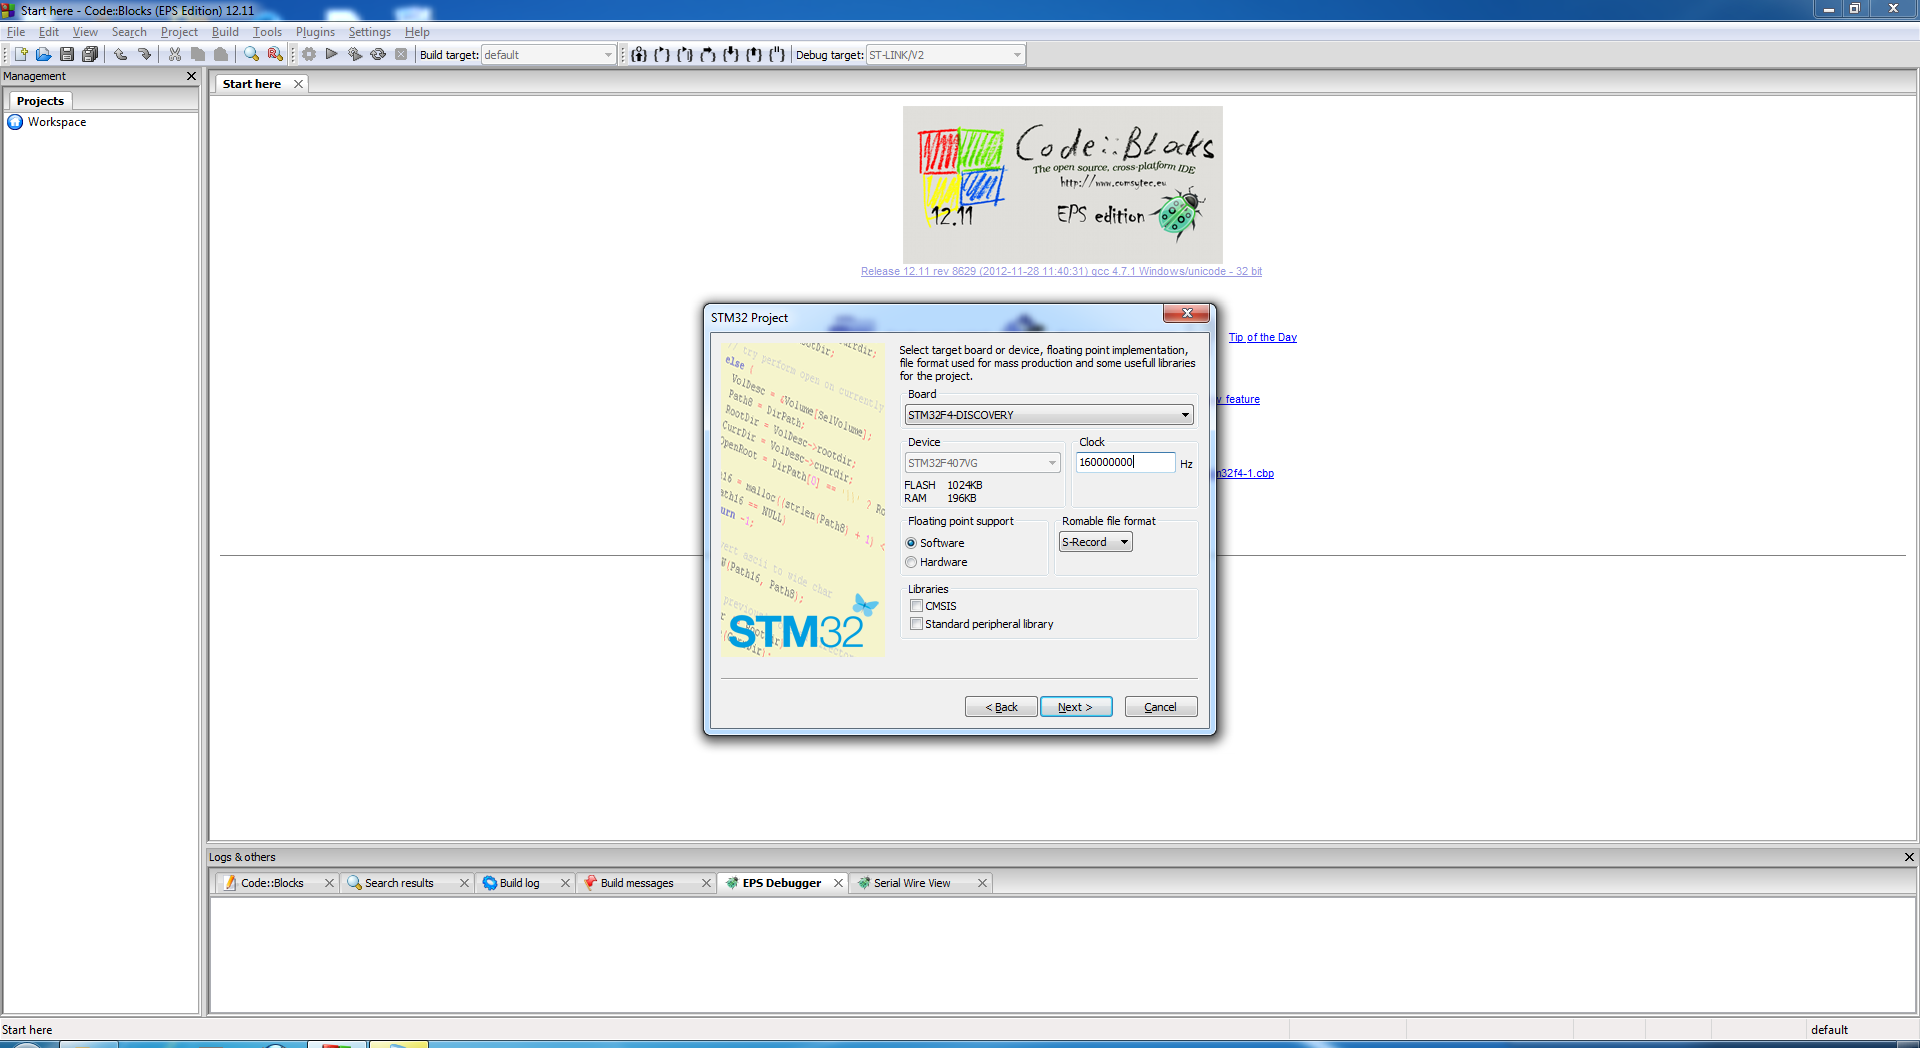 STM32 project wizard launched